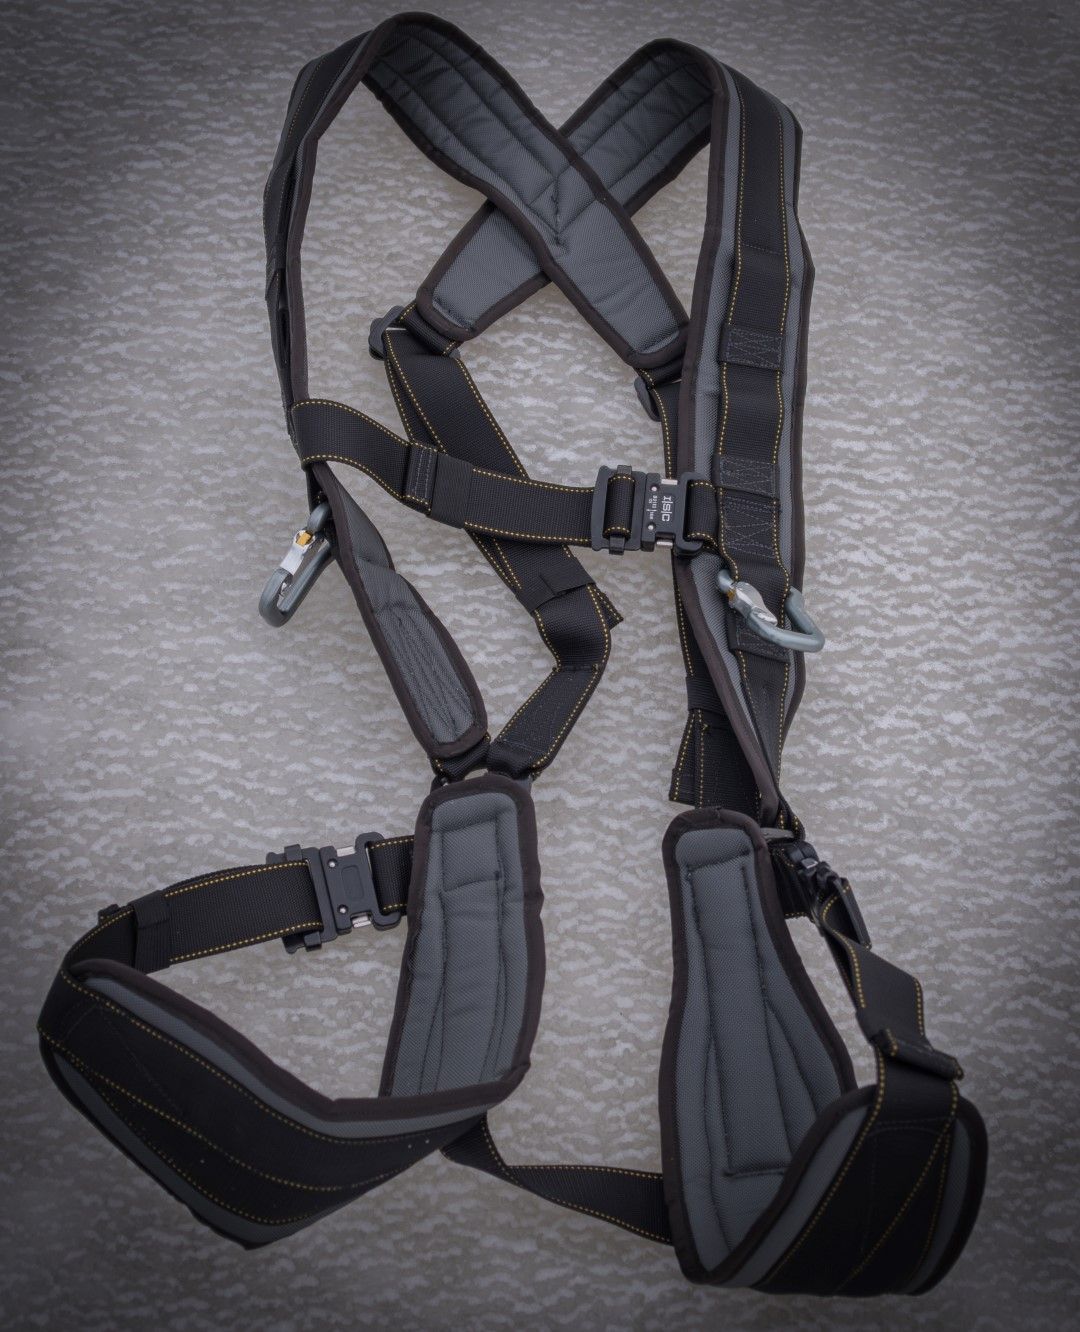 Kiting Harness For Paramotor Powered Paragliding With